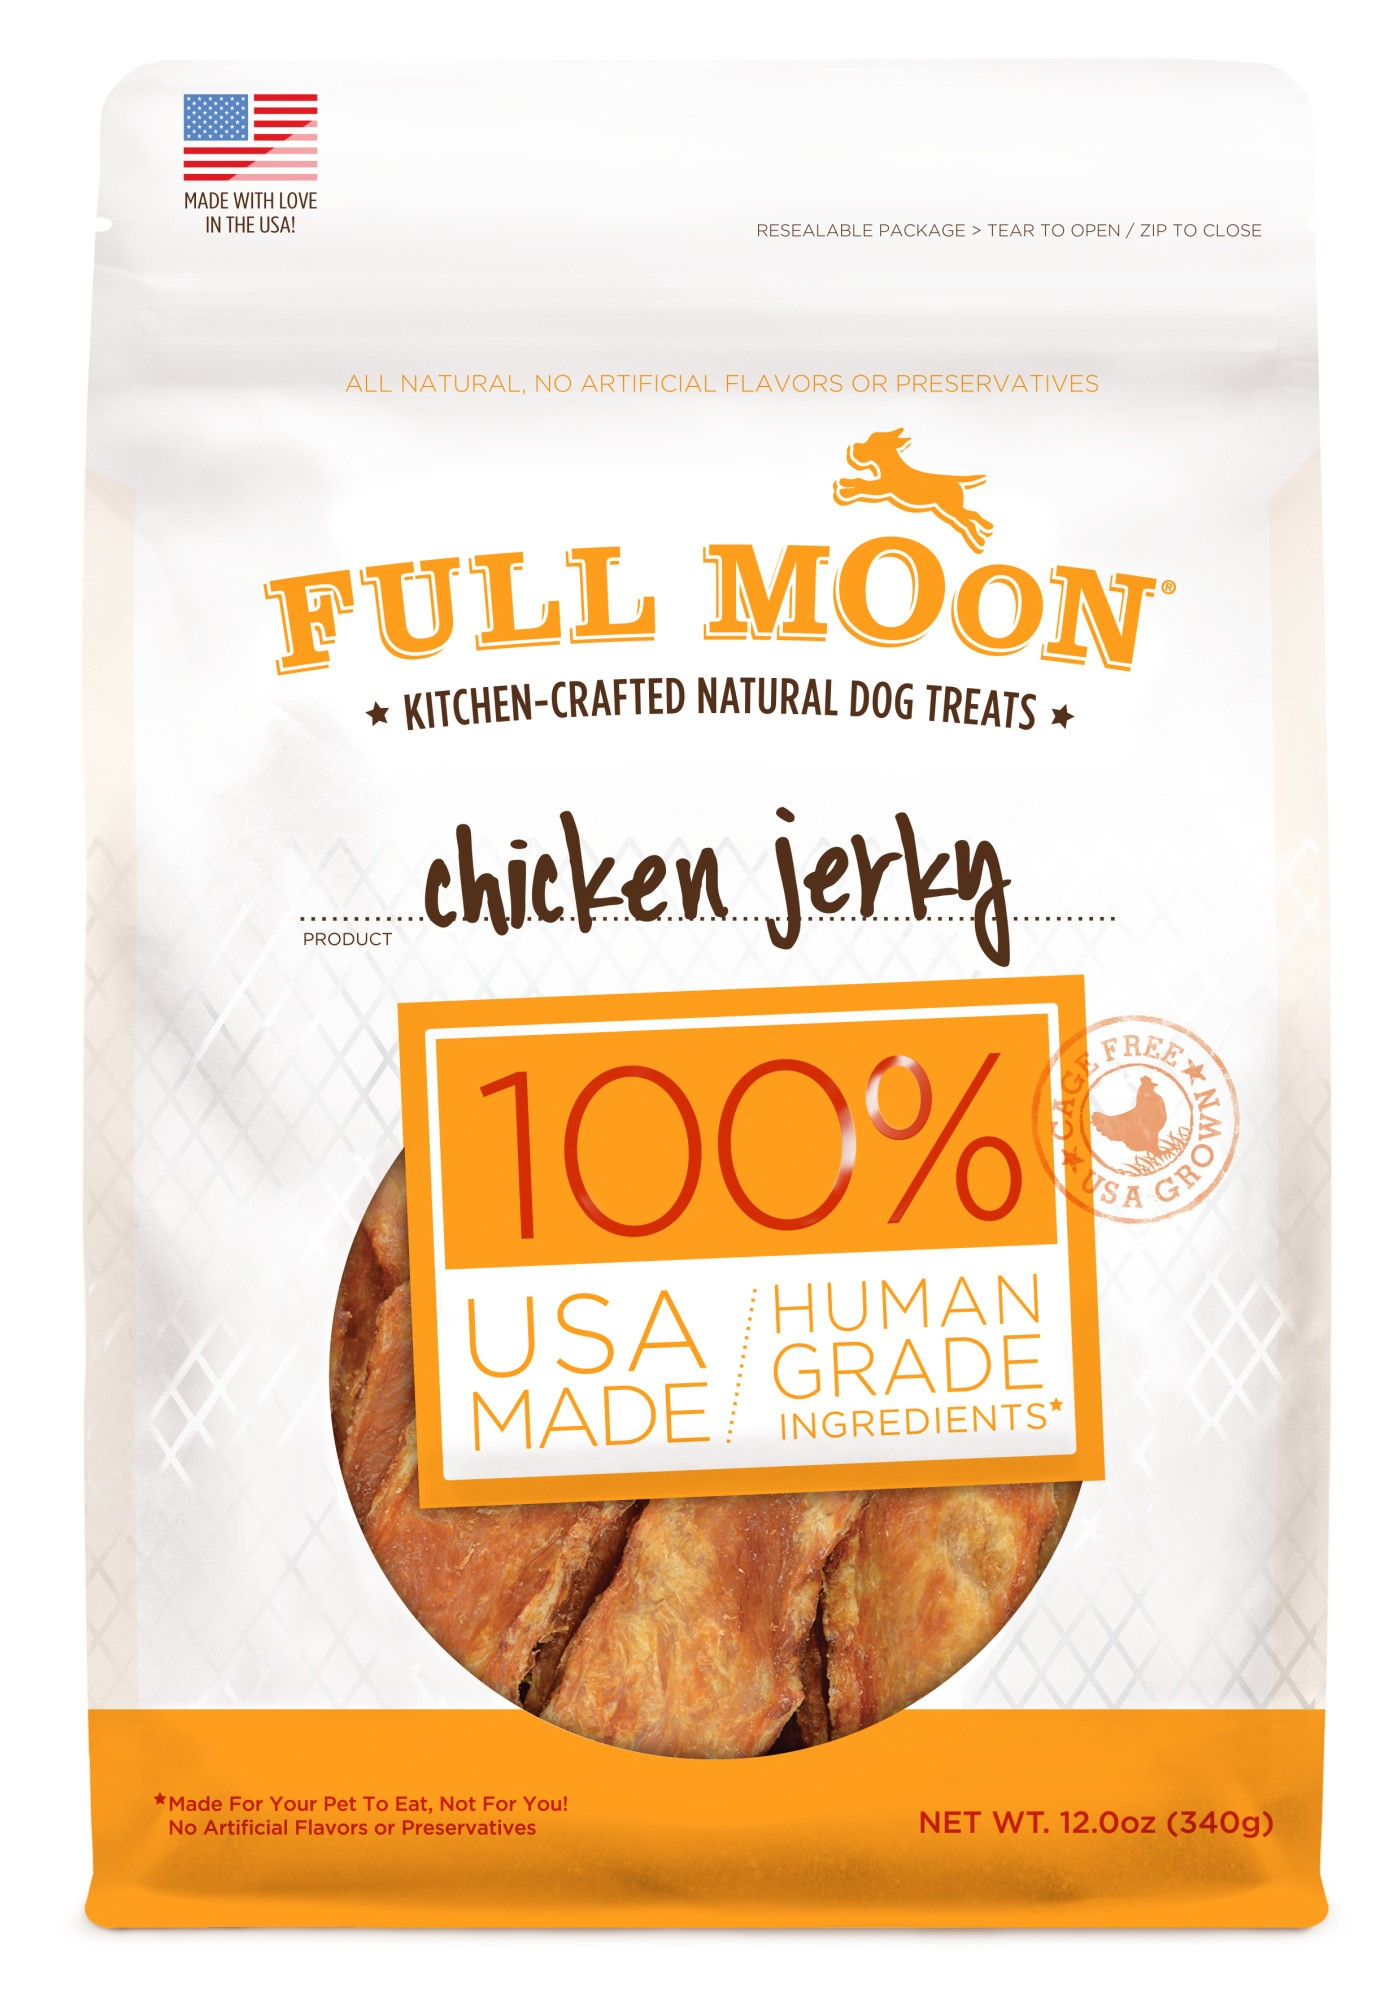 Full Moon All Natural Human Grade Dog Treats, Chicken Jerky, 12 Ounce by Perdue Foods, LLC